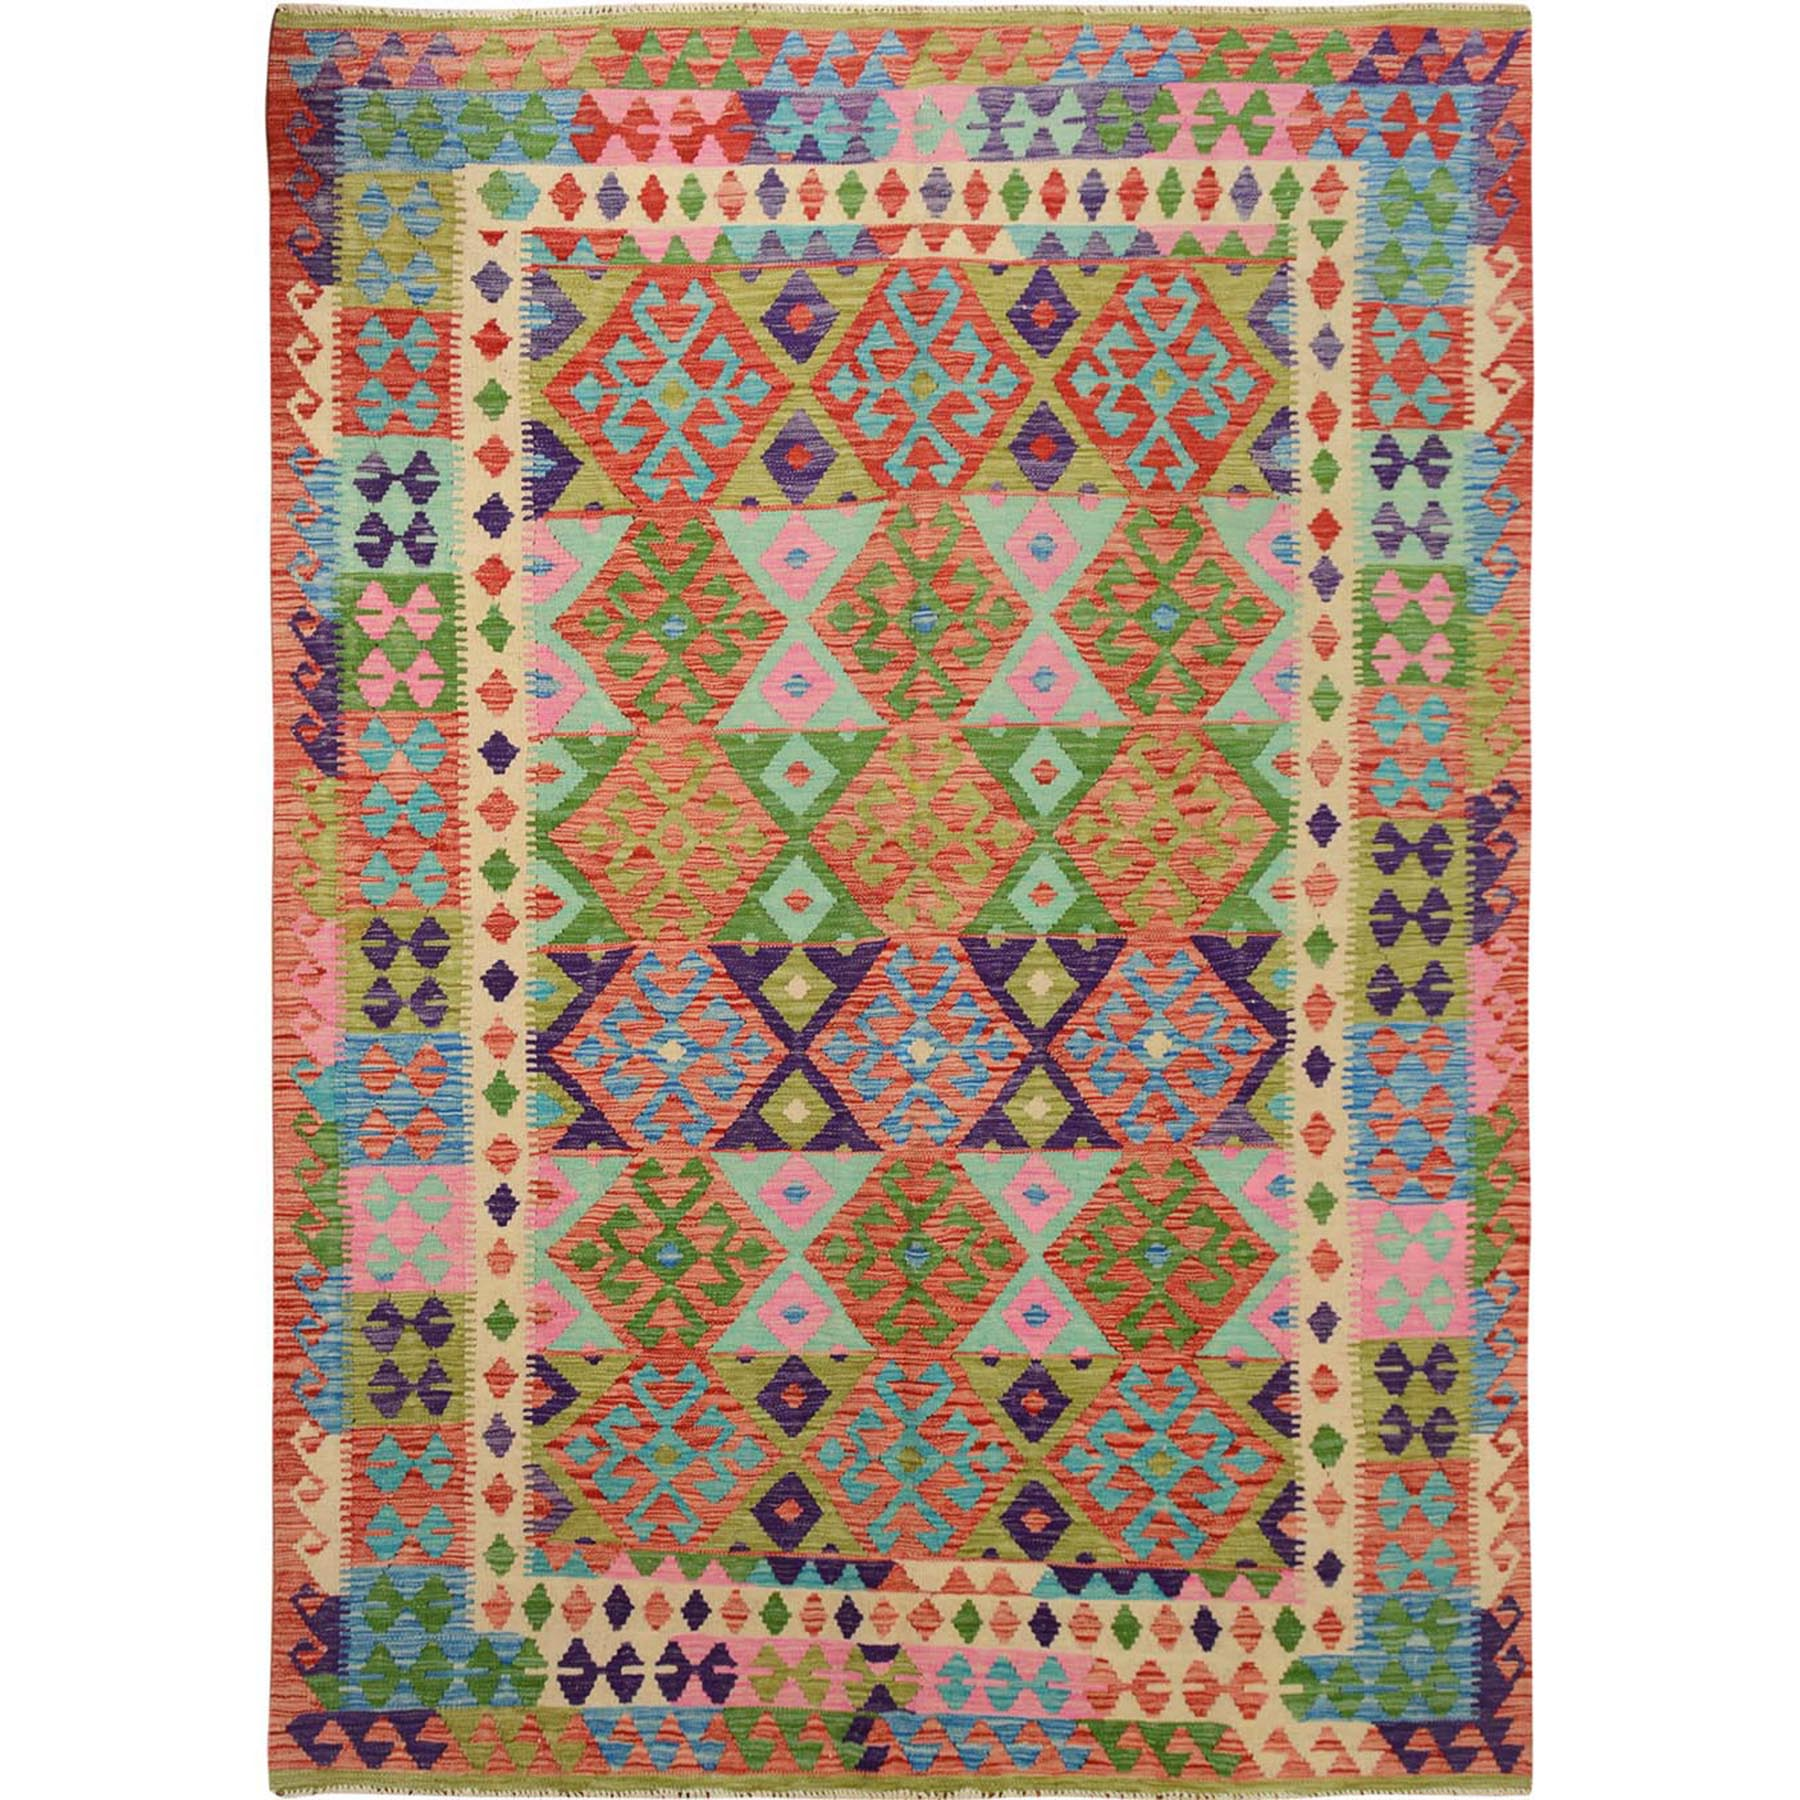 "6'6""x9'4"" Colorful Afghan Reversible Kilim Pure Wool Hand Woven Oriental Rug"